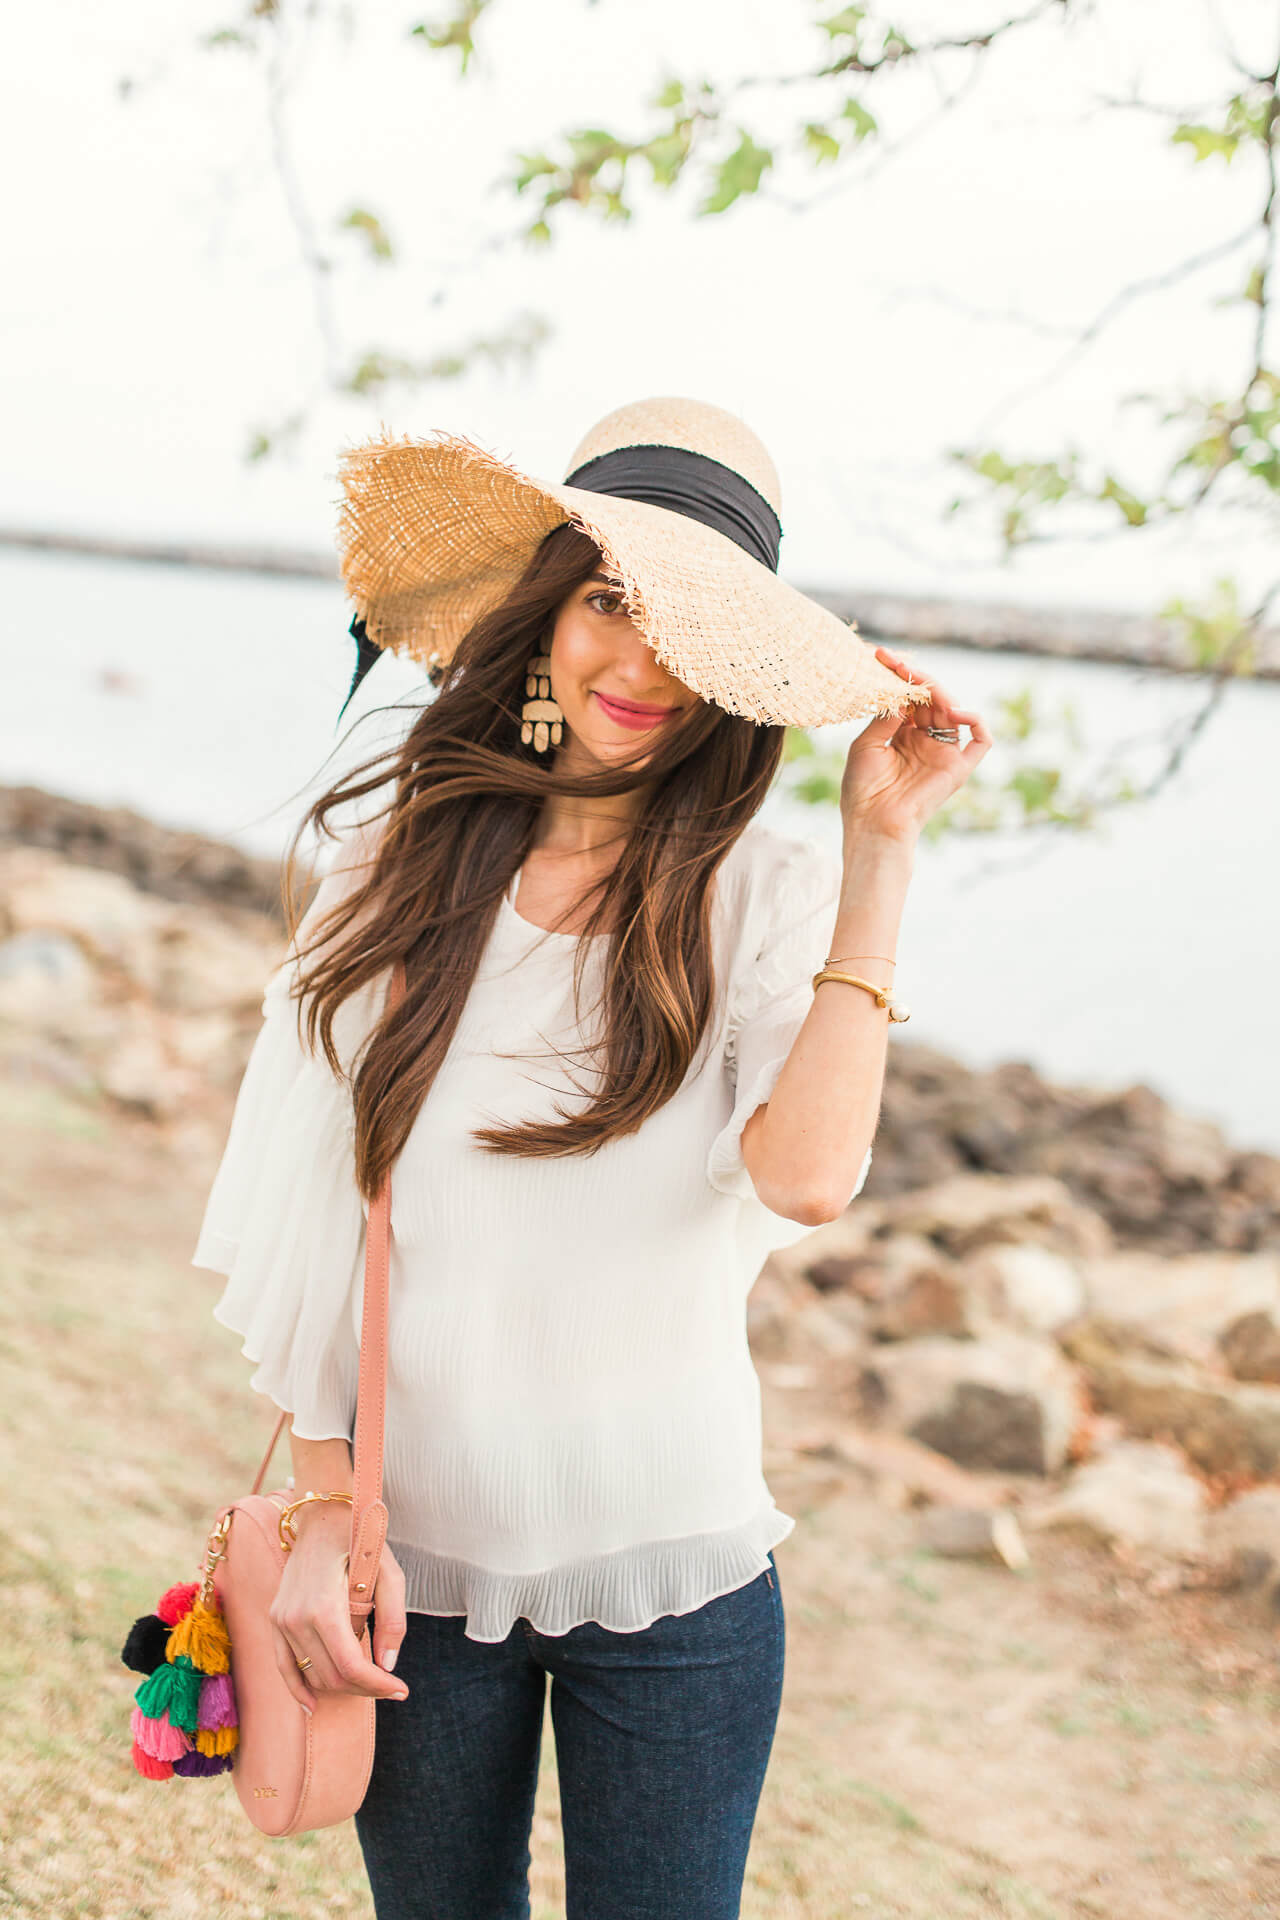 spring straw hat and outfit inspiration